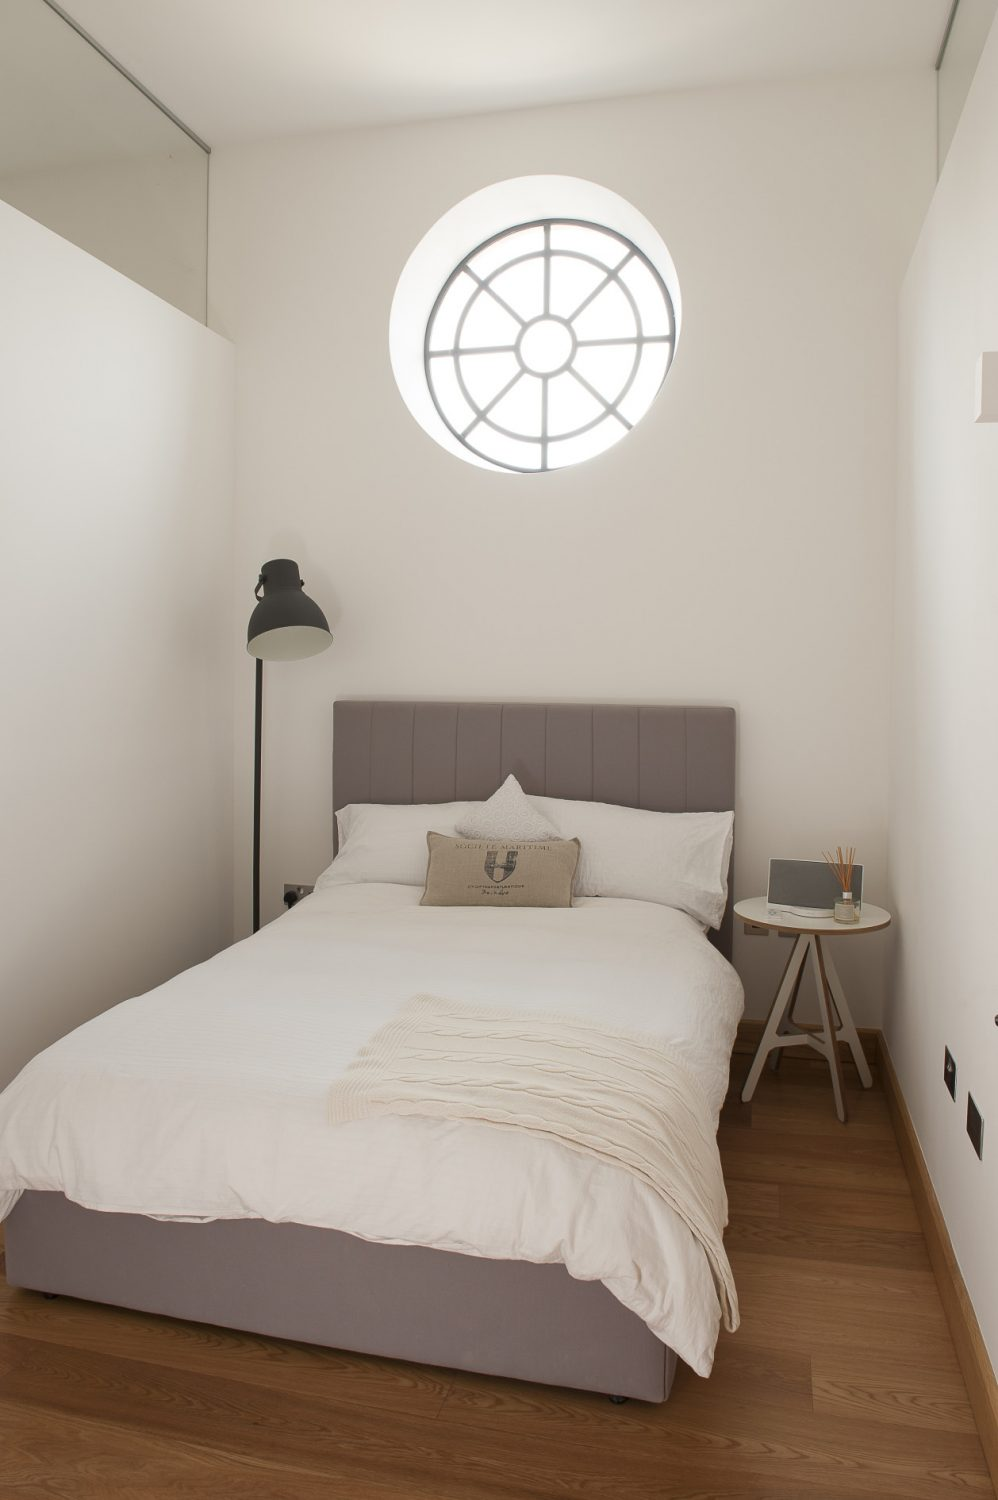 One of the guest rooms with feature window